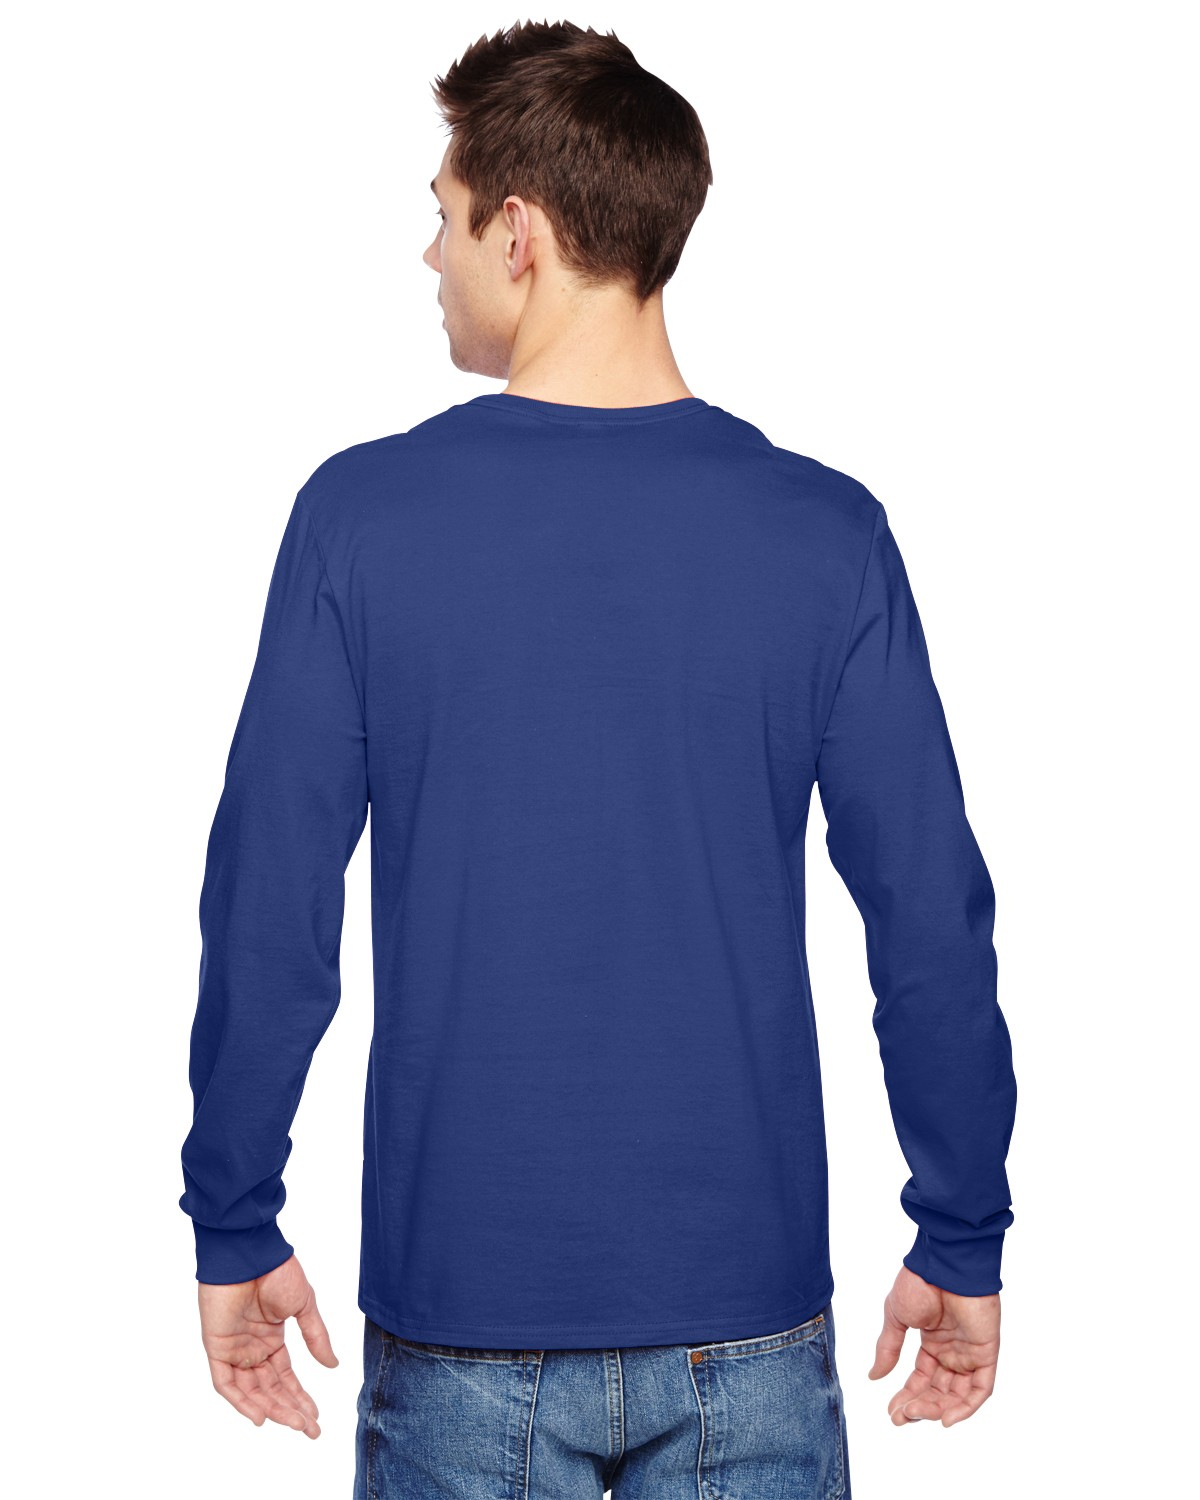 SFLR Fruit of the Loom ADMIRAL BLUE